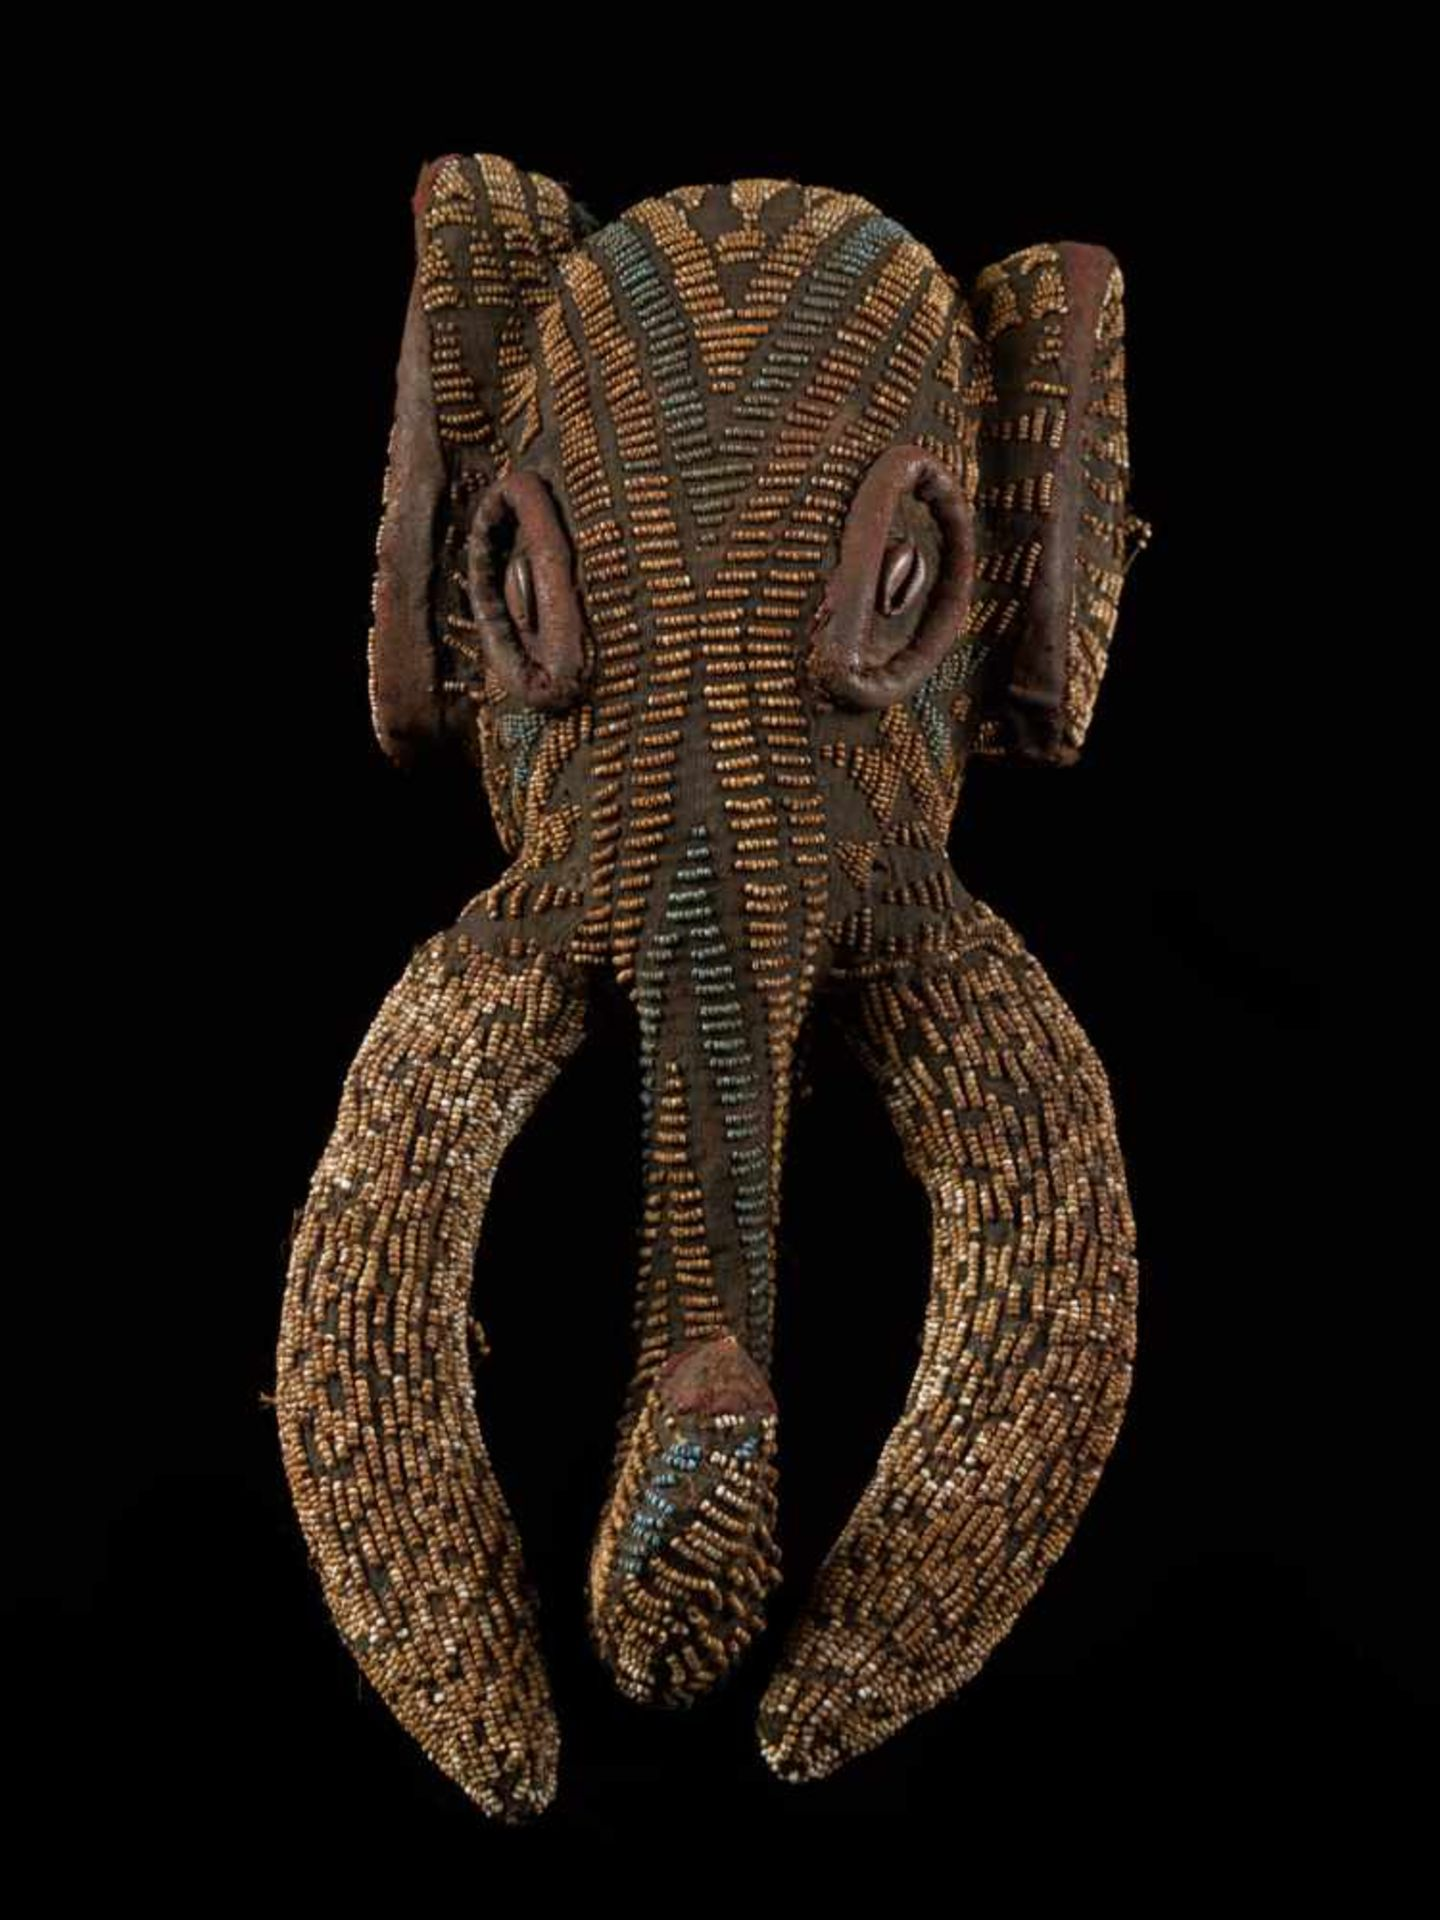 Beaded Small Elephant Mask - Tribal ArtAn enthralling elephant mask that is decorated with glass - Bild 3 aus 7